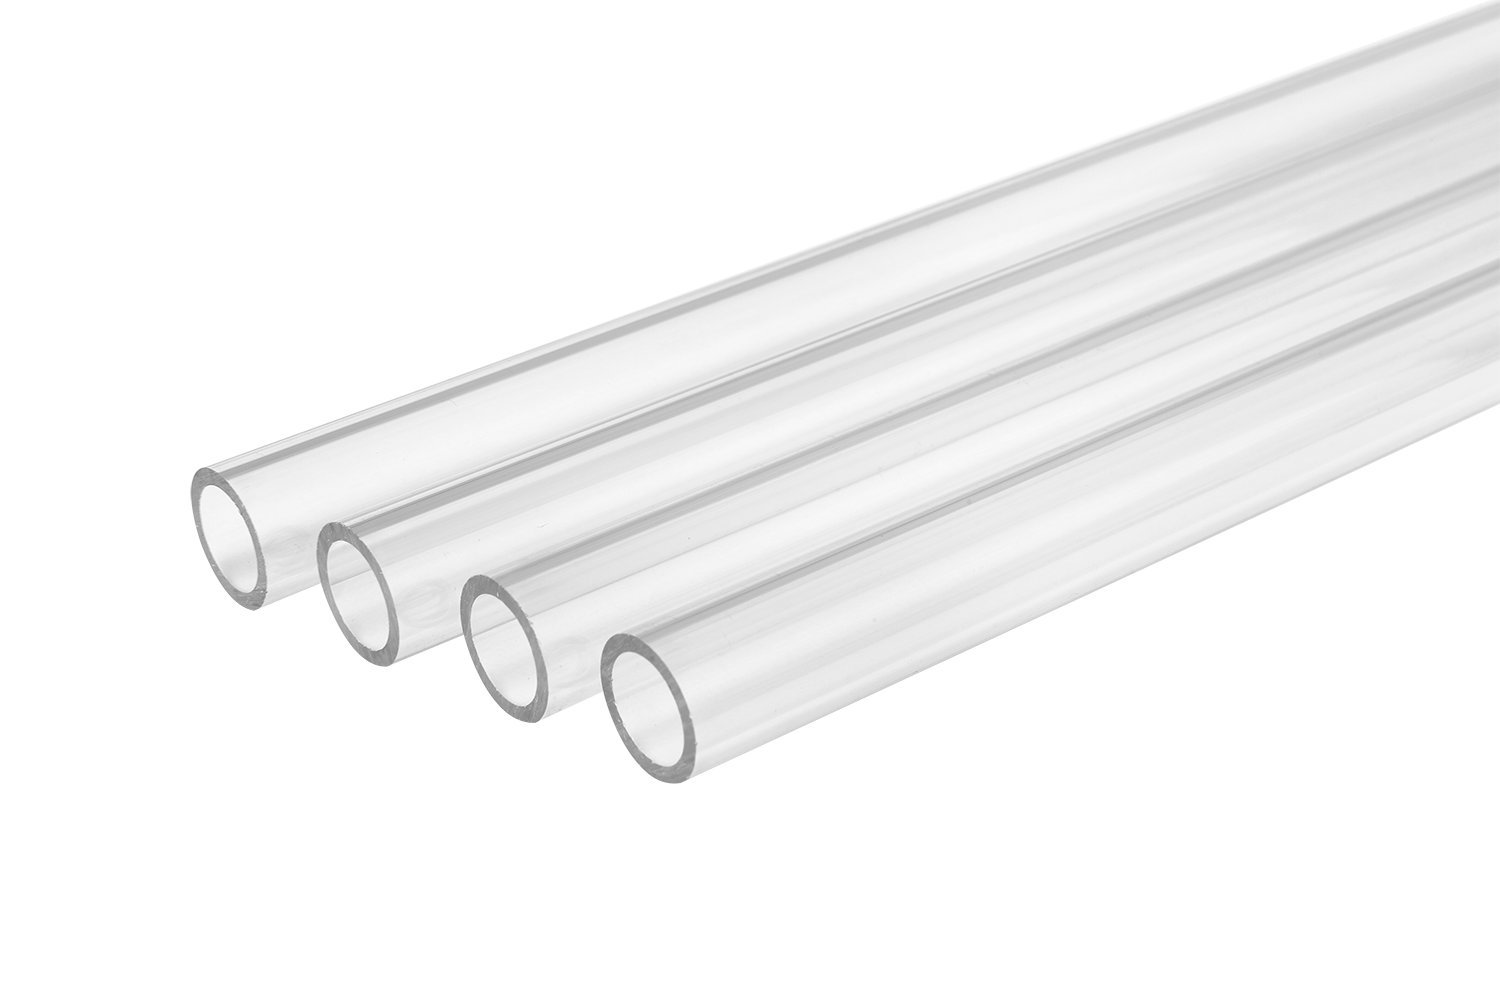 Thermaltake Pacific DIY LCS 1000mm Lengths V-Tubler PETG Hard Tubing (4-Pack) OD 16mm (5/8'') x ID 12mm (1/2'') CL-W116-PL16TR-A by Thermaltake